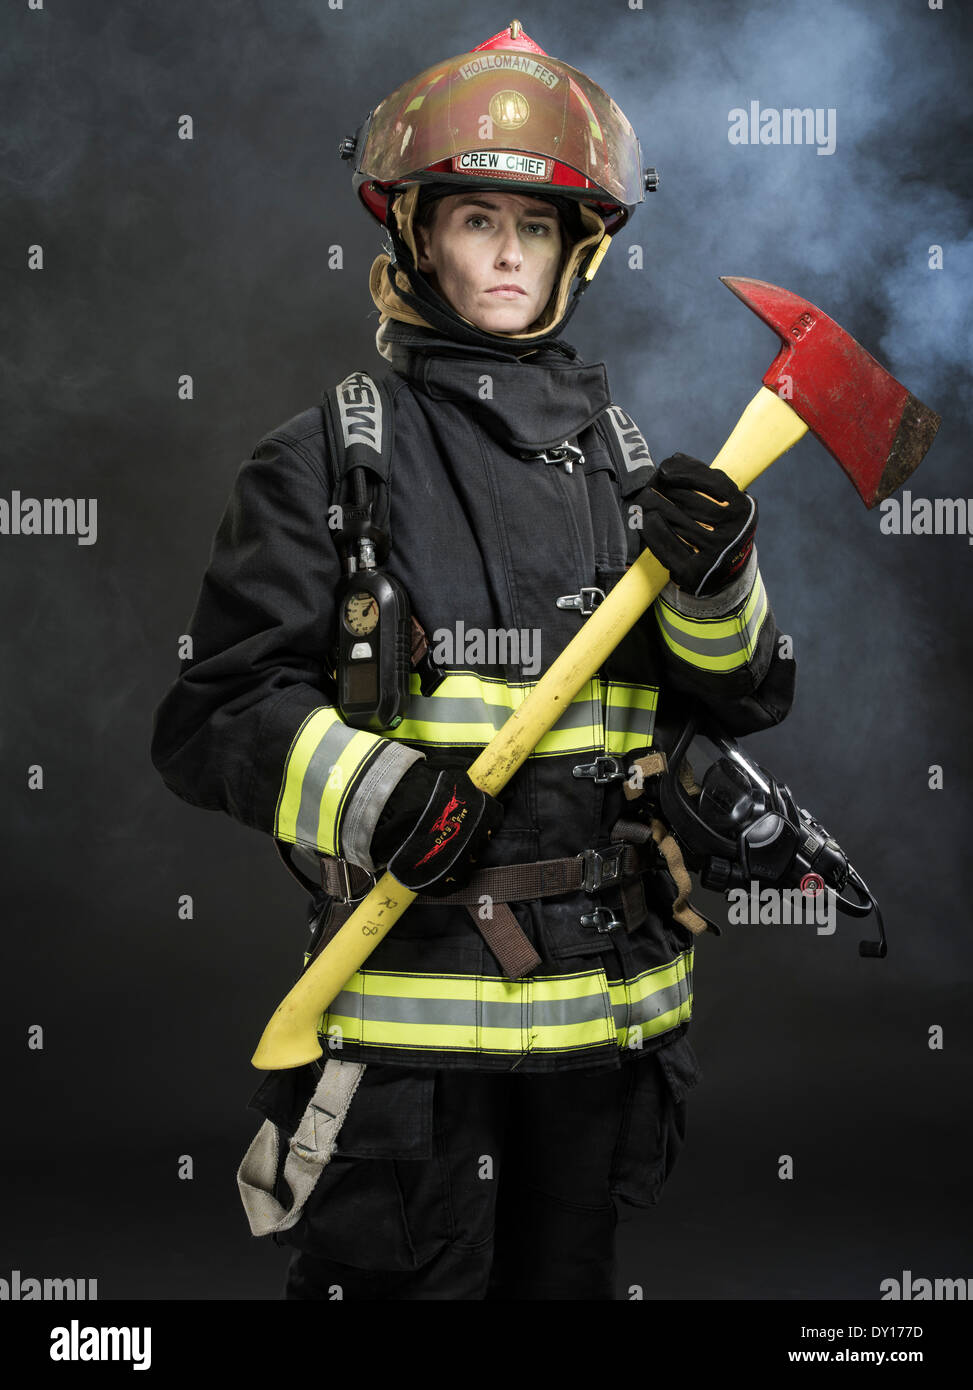 Female firefighter in structural firefighting uniform with breathing apparatus and axe - Stock Image